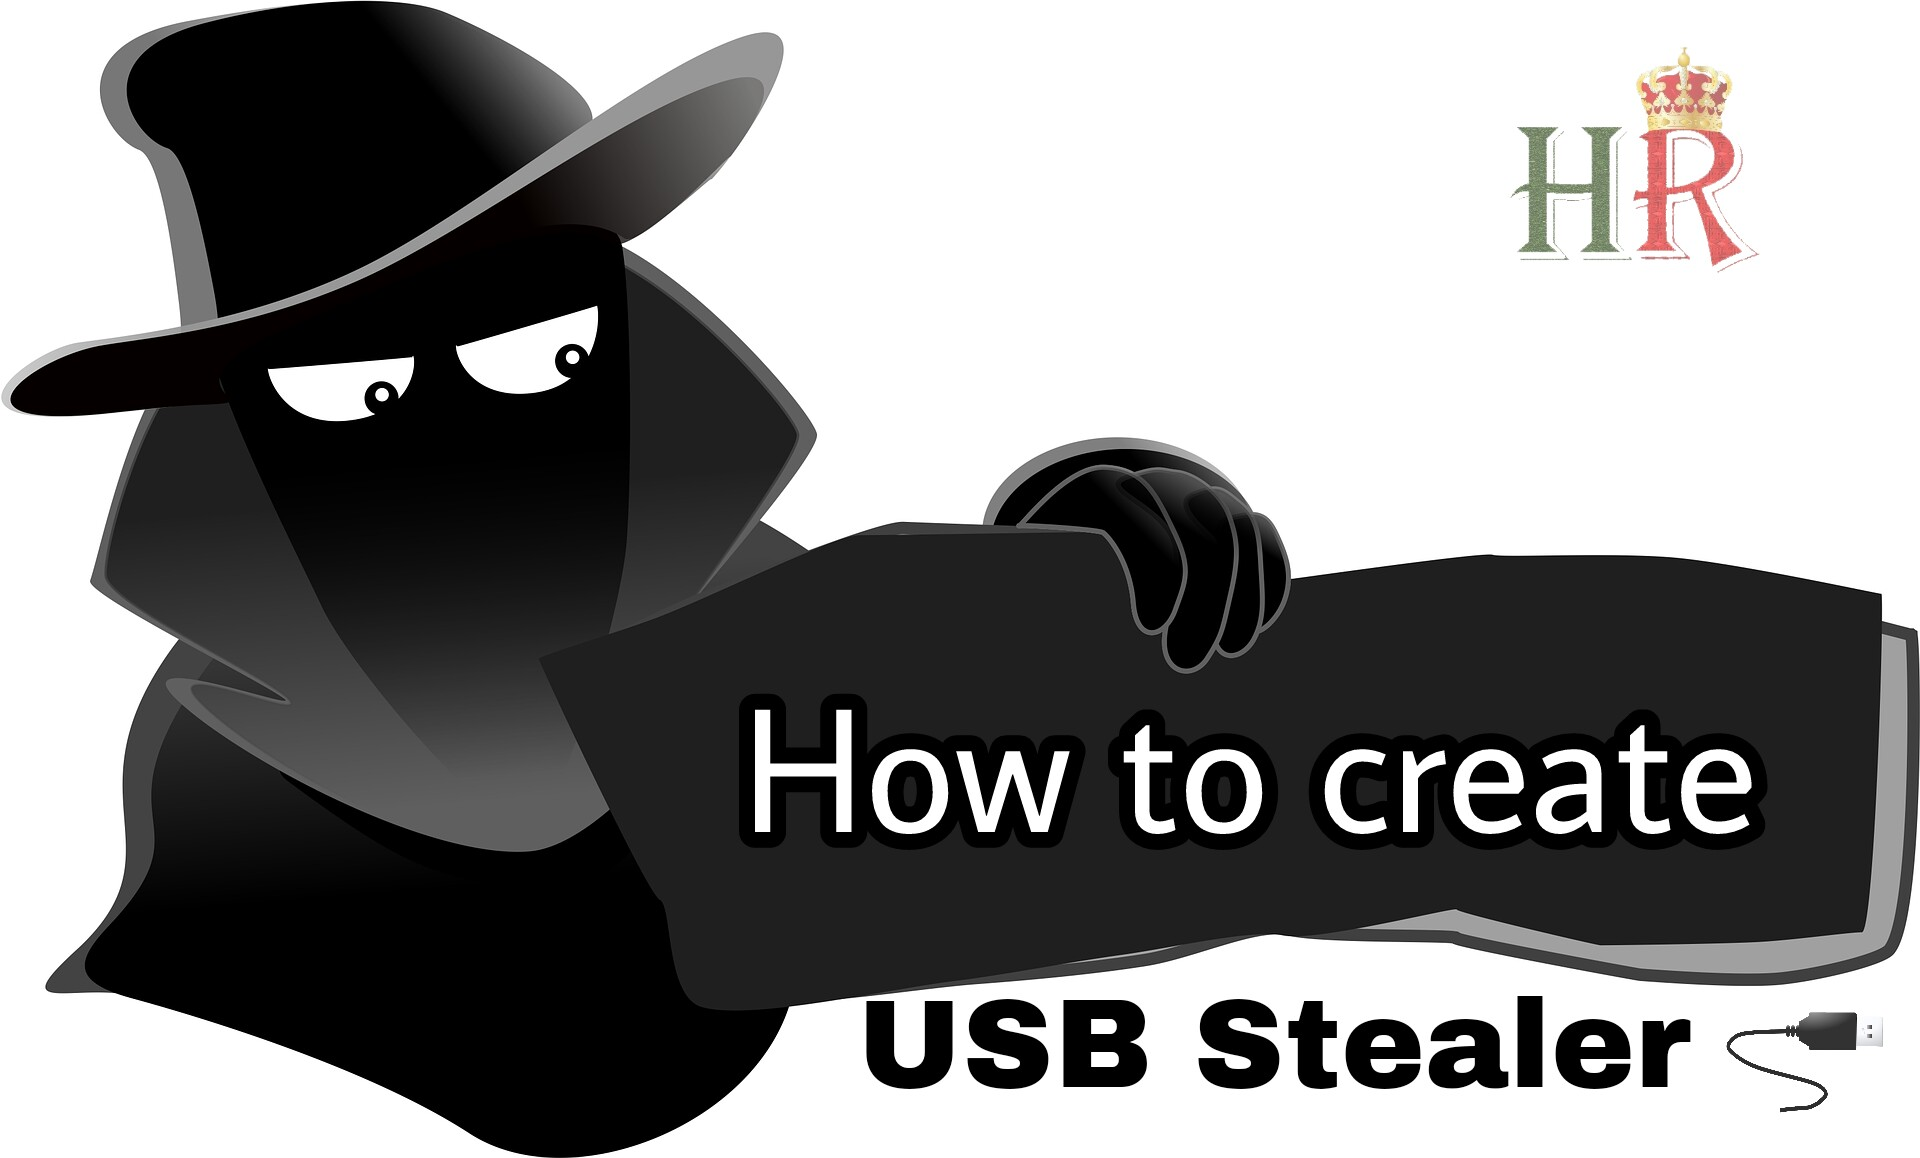 how to create usb stealer